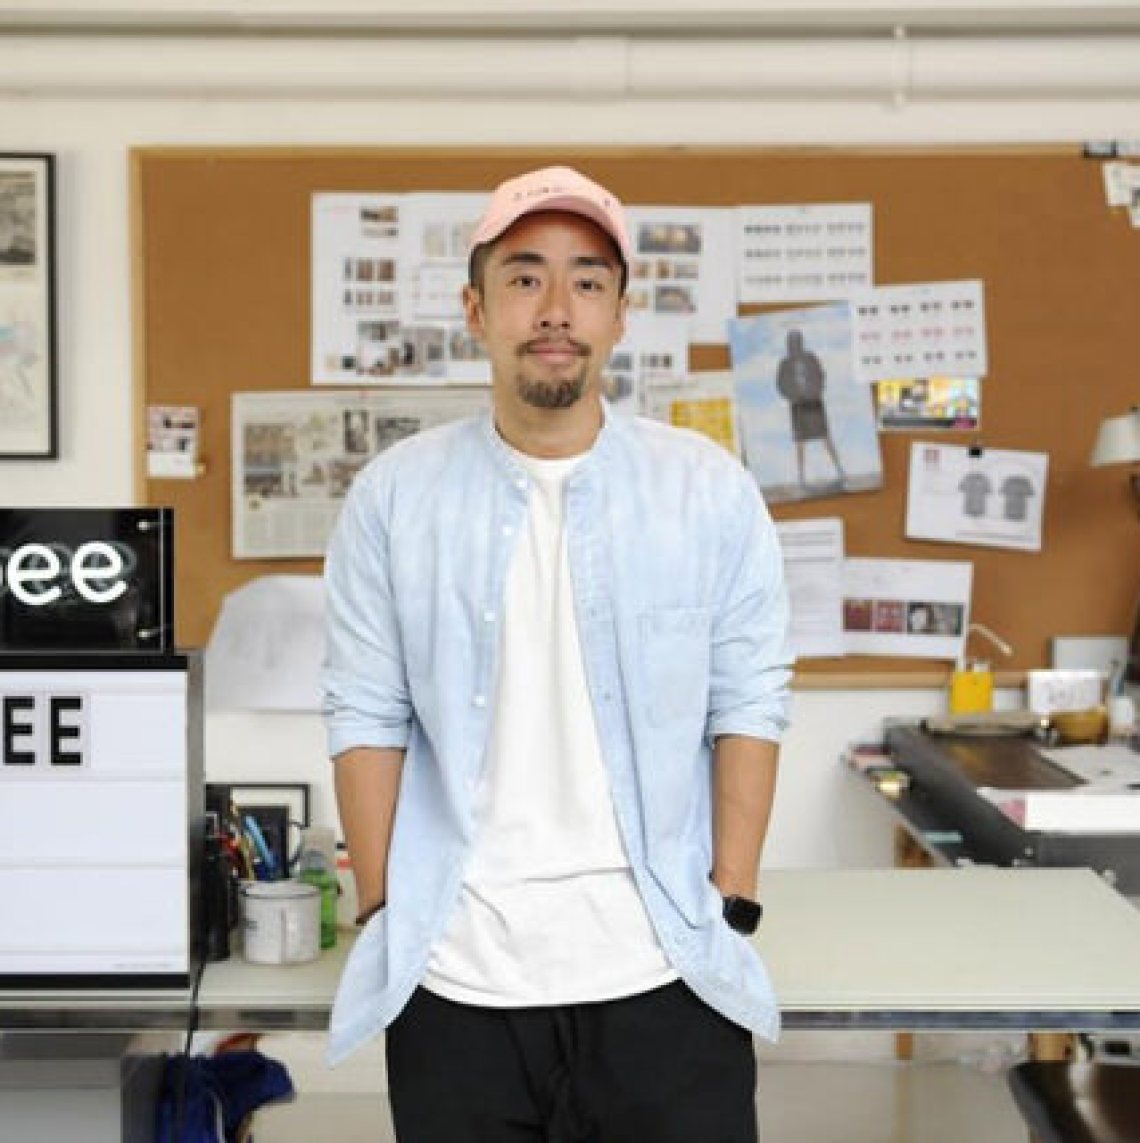 Kevin Poon in the CLOT x Suicoke Sandals